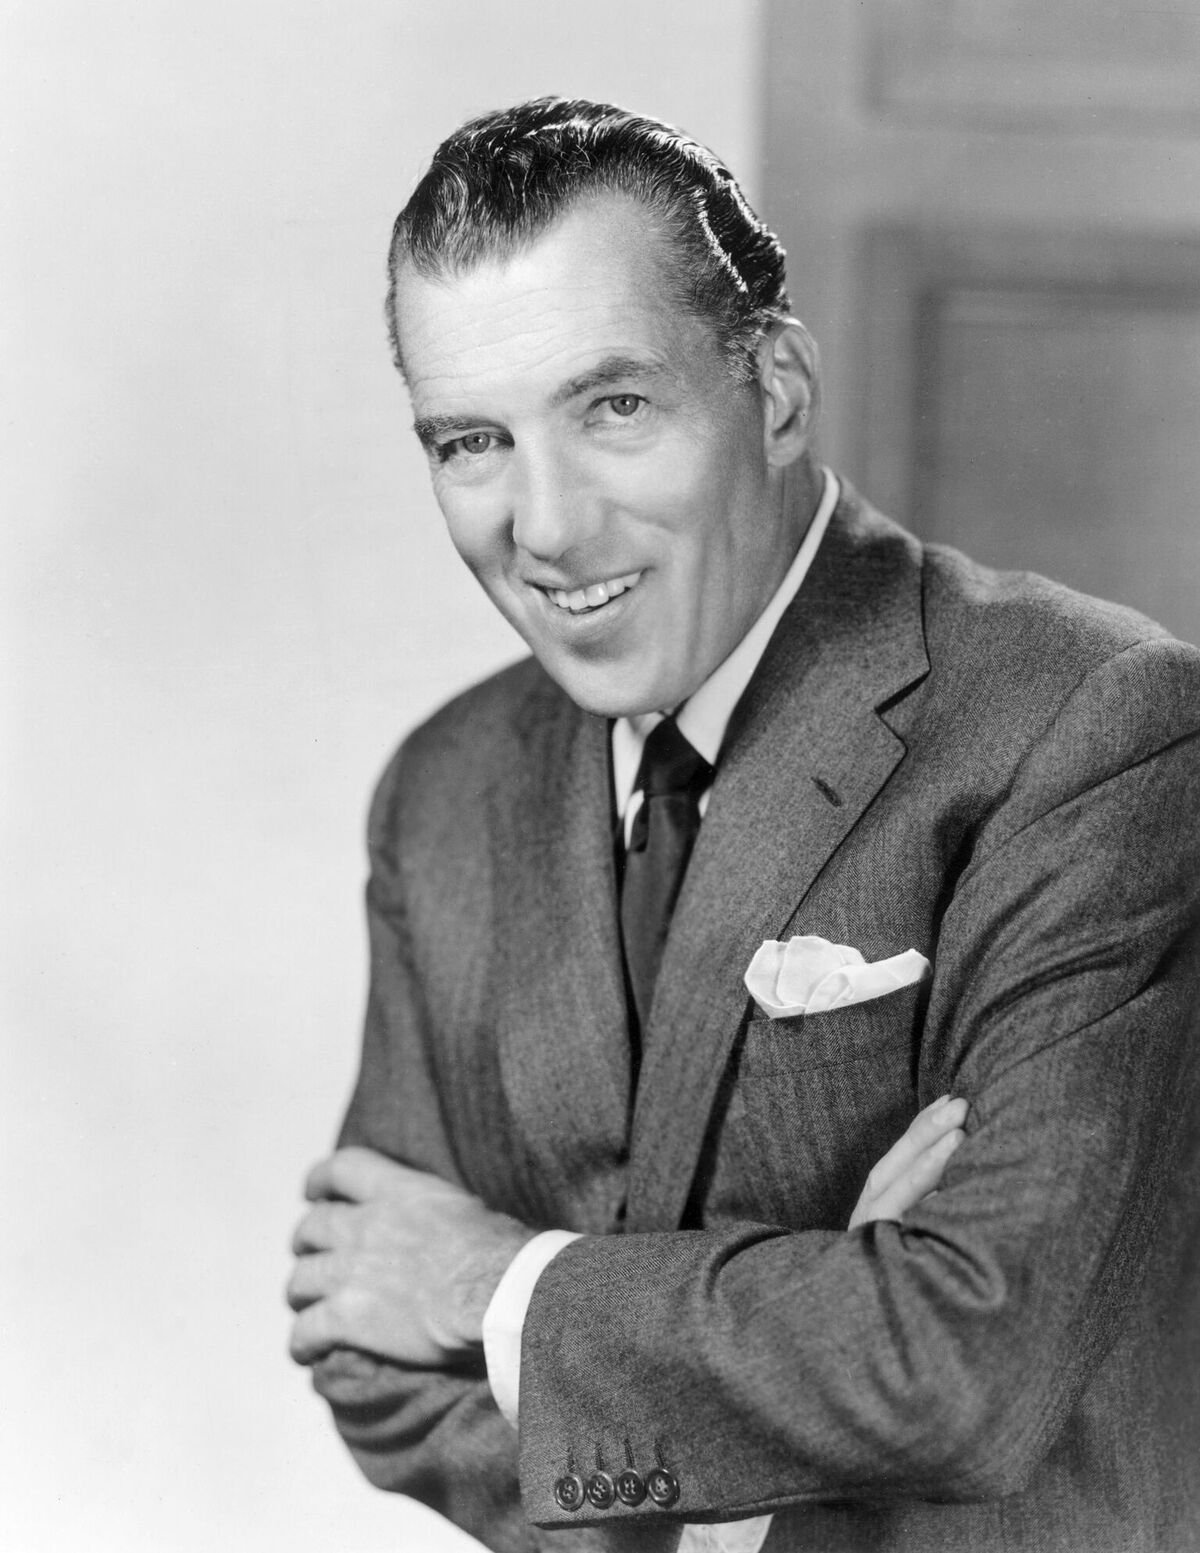 Promotional portrait of American television variety show host, Ed Sullivan smiling with his arms crossed | Source: Getty Images